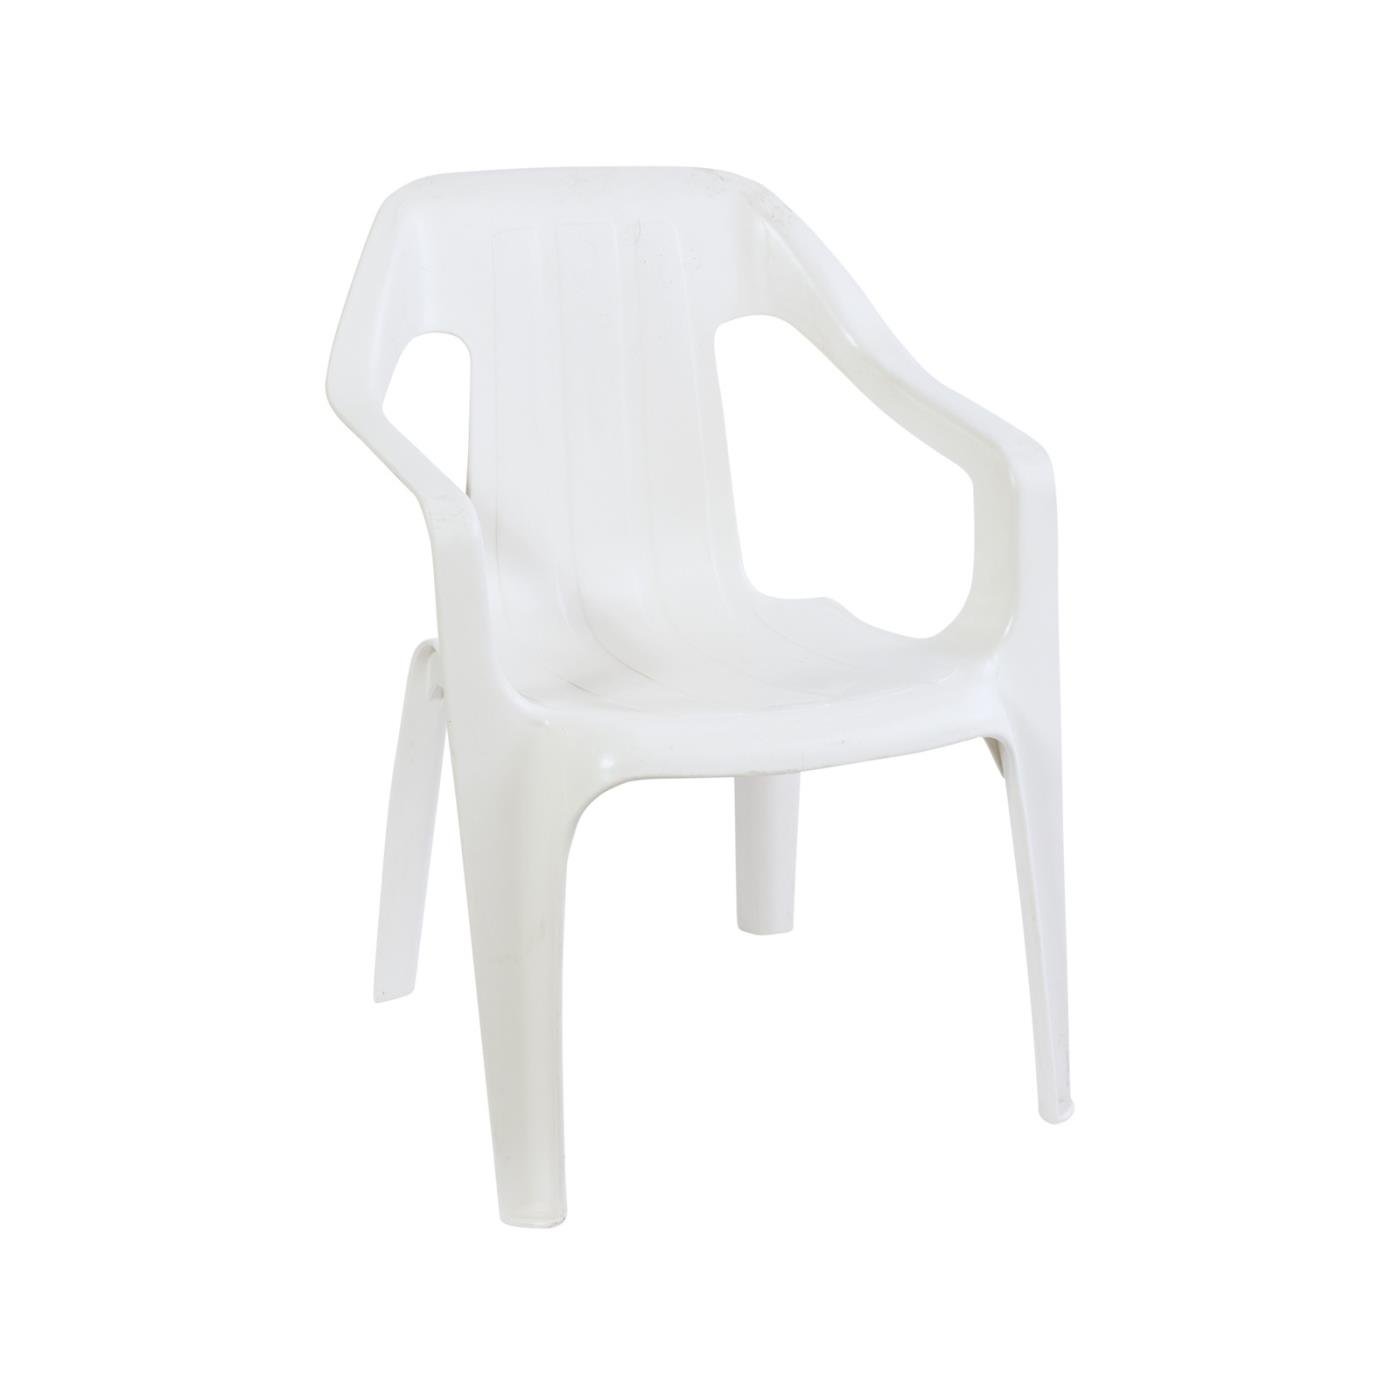 White Plastic Children's Chair with Arms